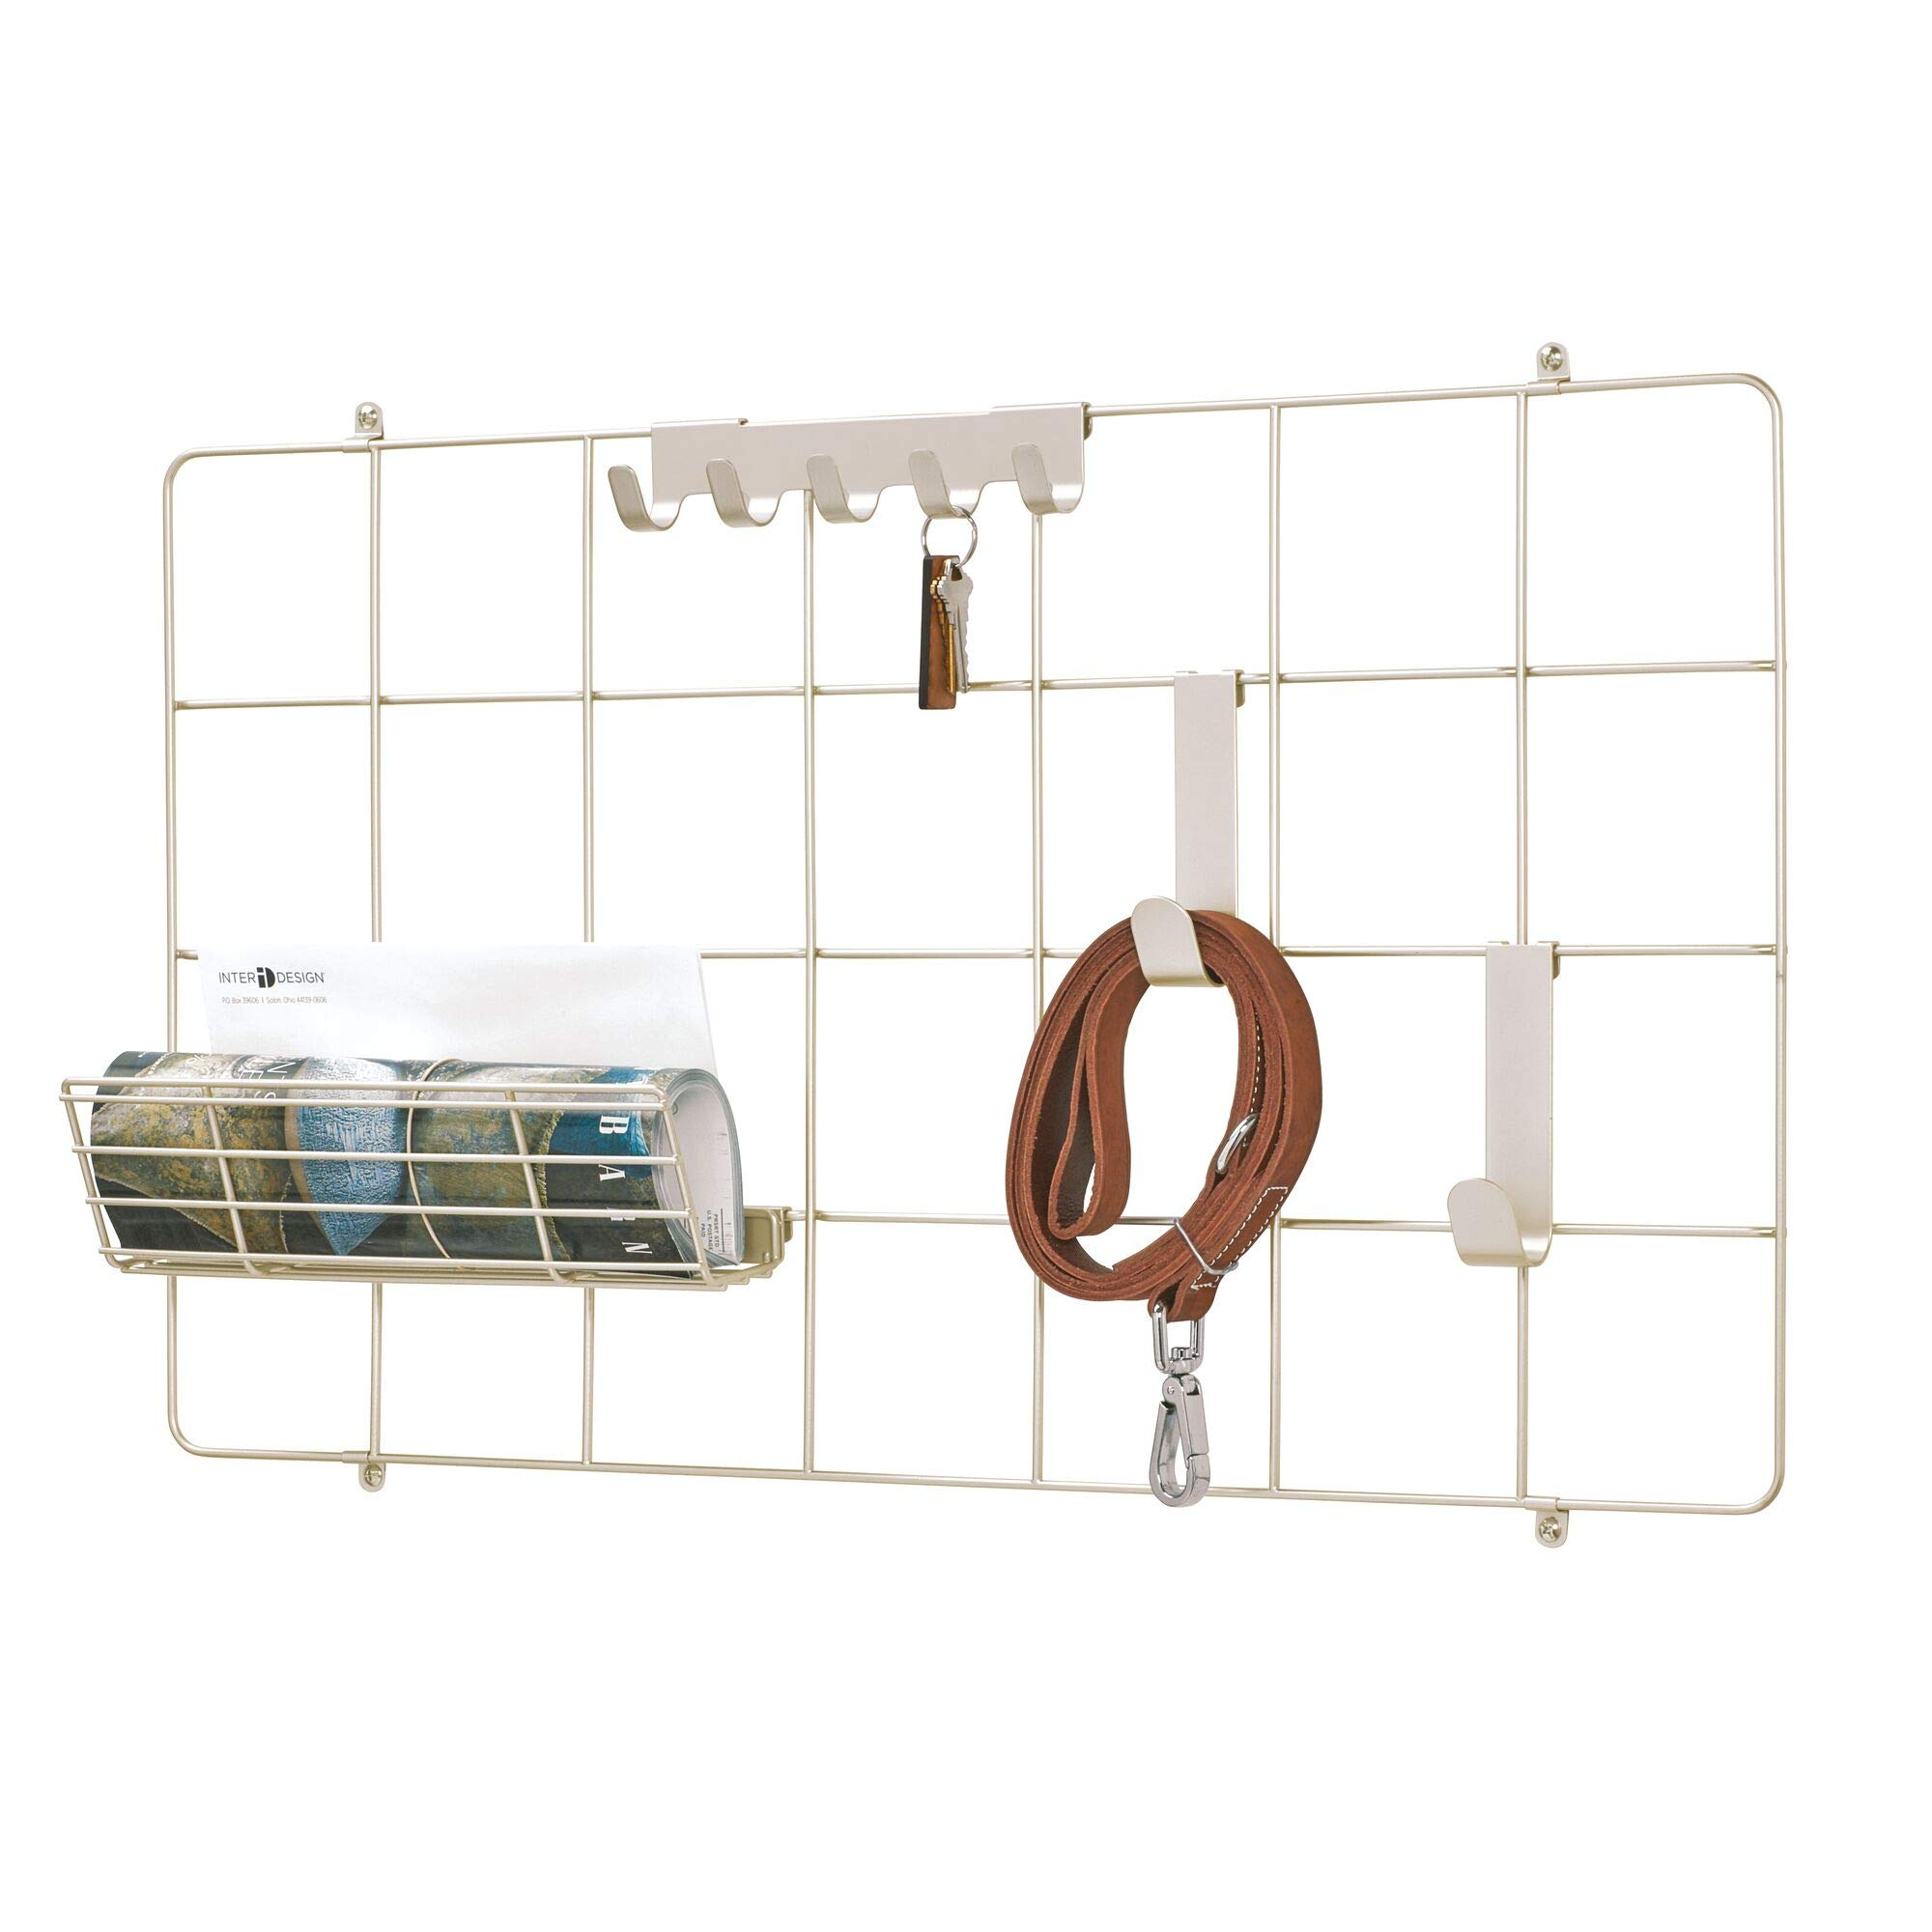 iDesign Jayce Metal Wall System, Modular Grid Organizational Panel for Additional Storage in Kitchen, Bathroom, Office, Craft Room, Garage, Basement, Satin